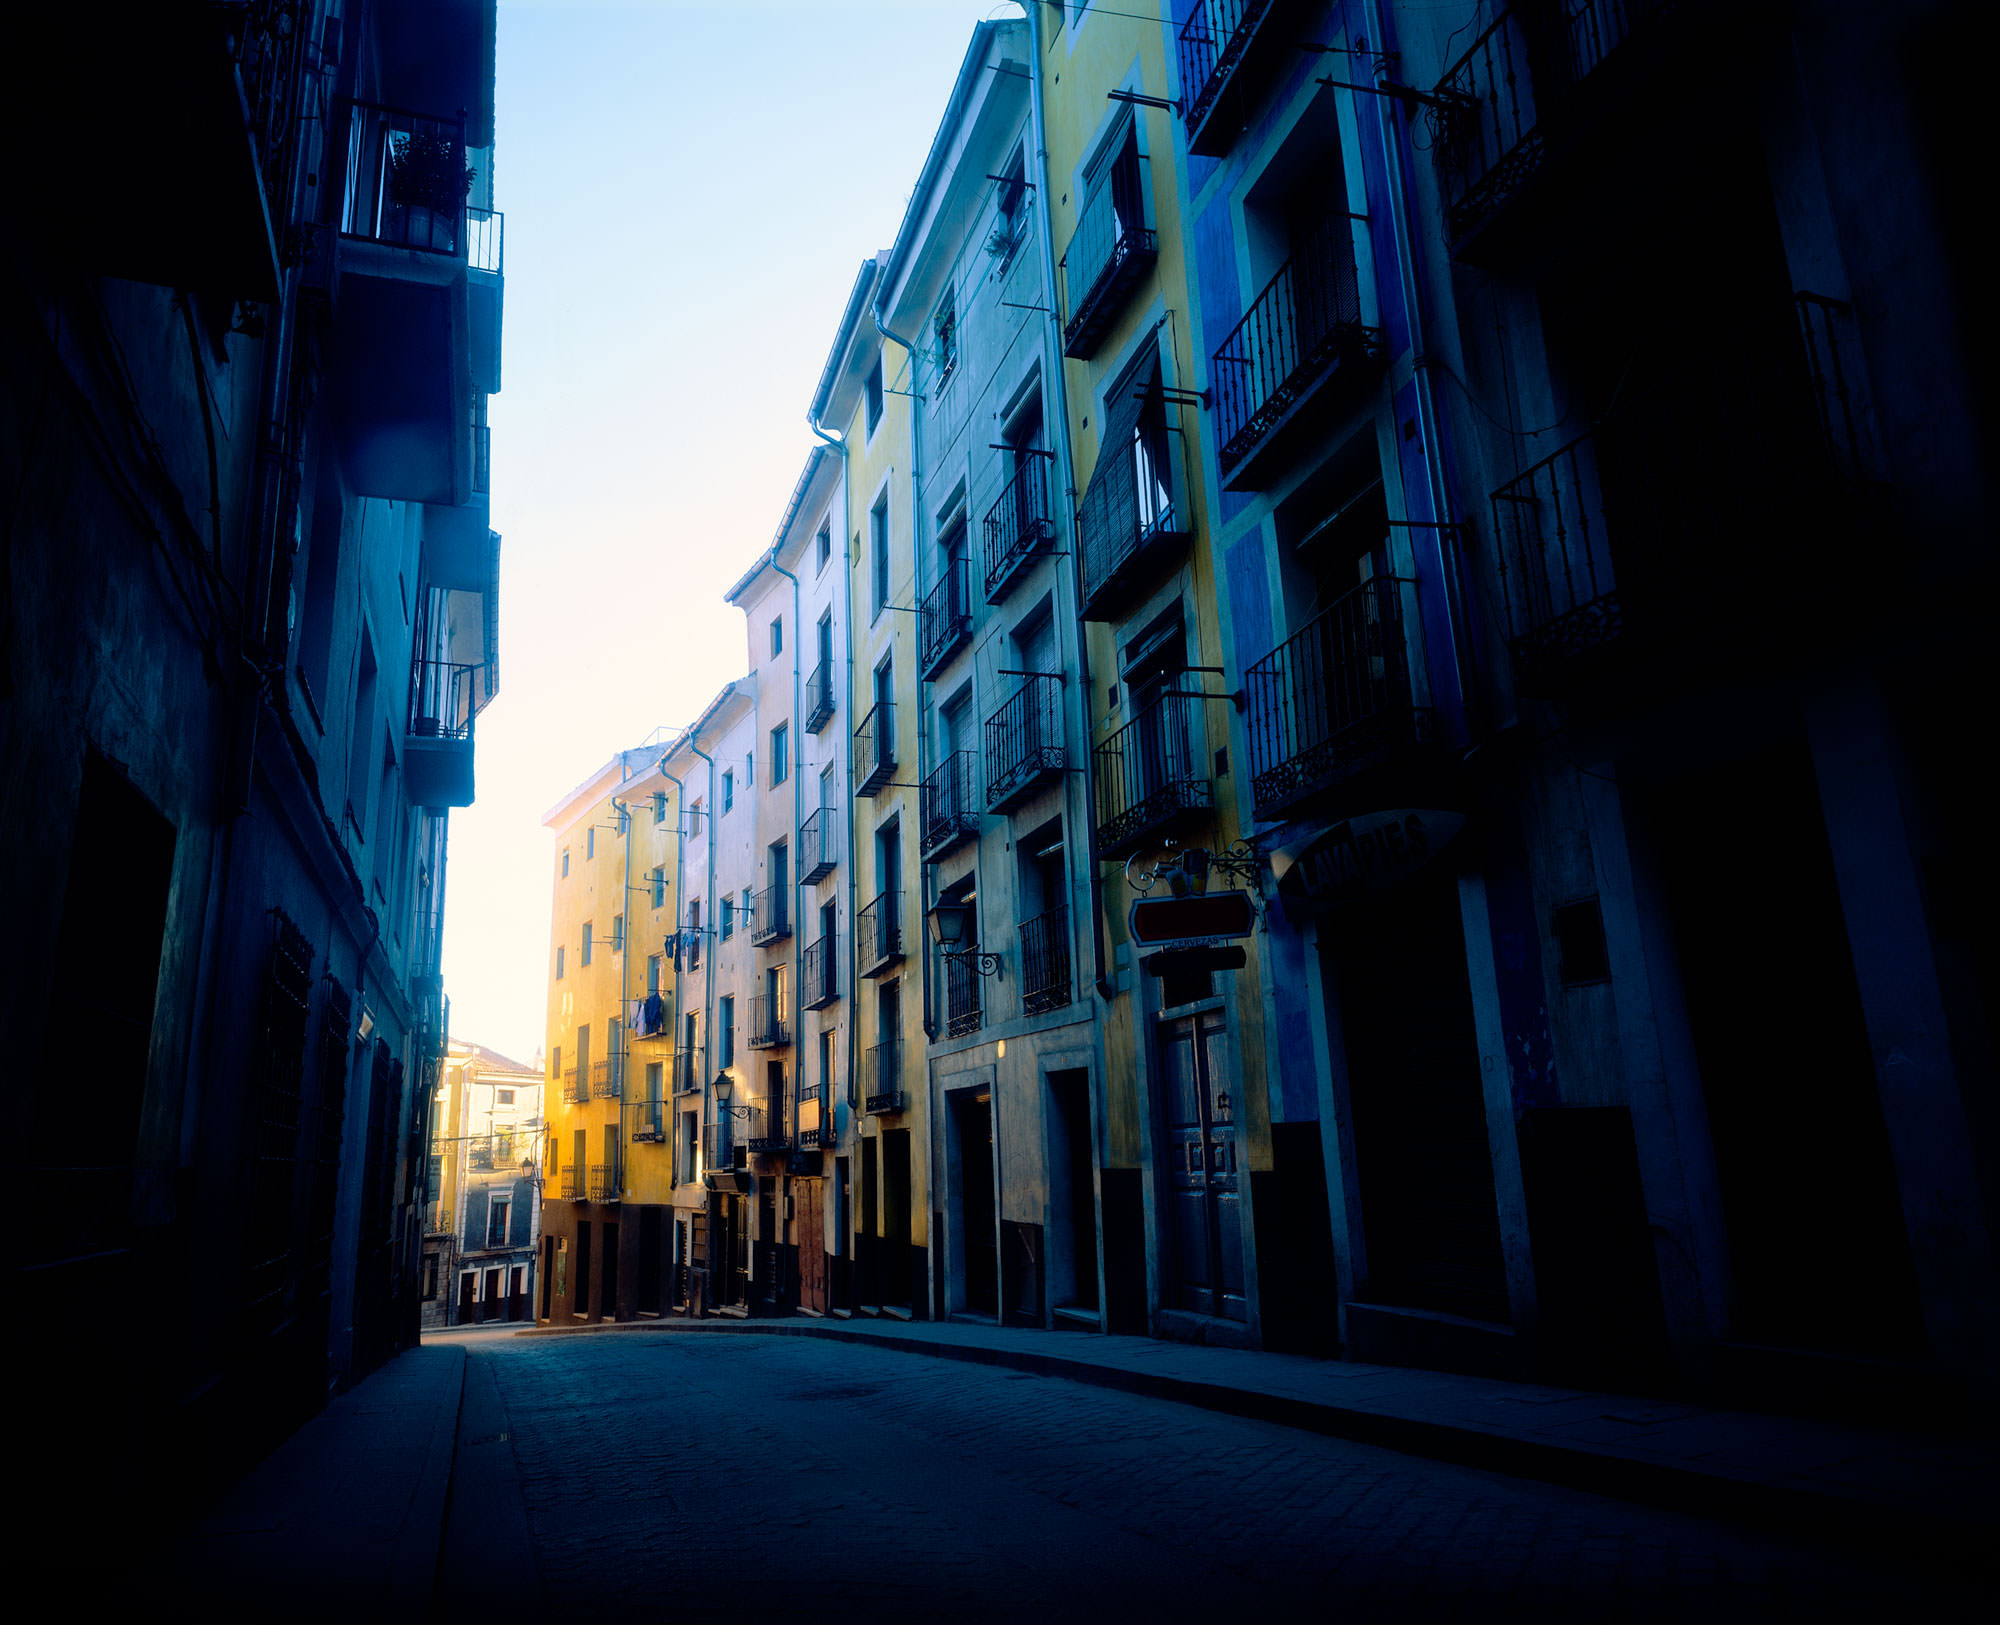 A photo of an alley in the beautiful city of Cuenca, Spain.